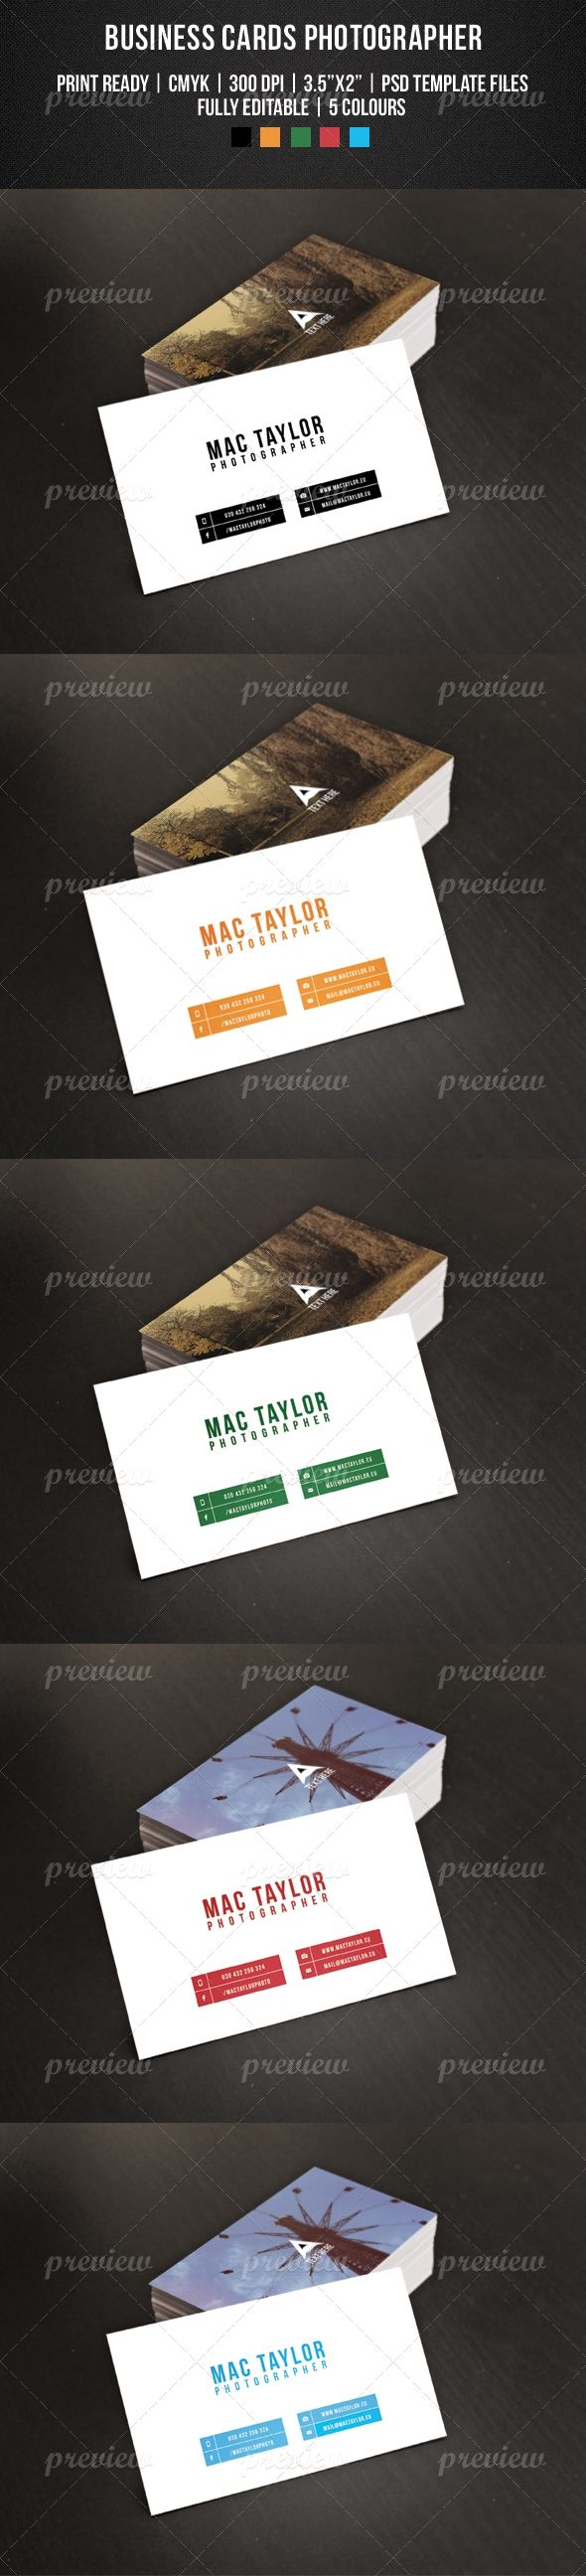 136 best business cards images on pinterest photographer business photographer business card reheart Image collections